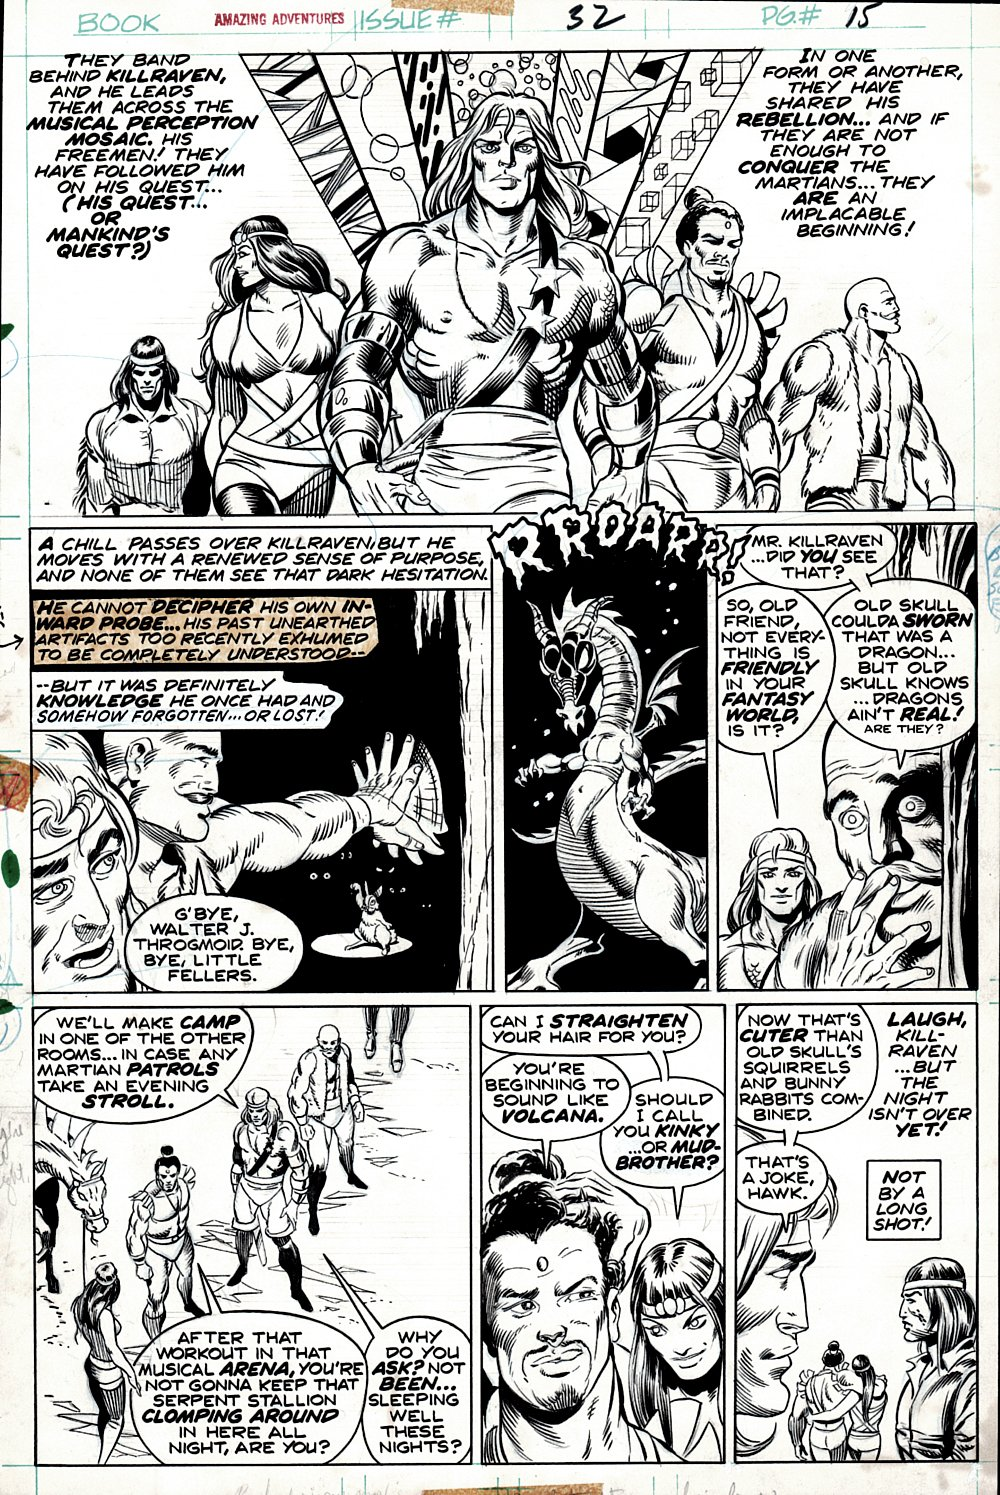 Amazing Adventures #32 p 15 (GREAT PAGE!) 1975